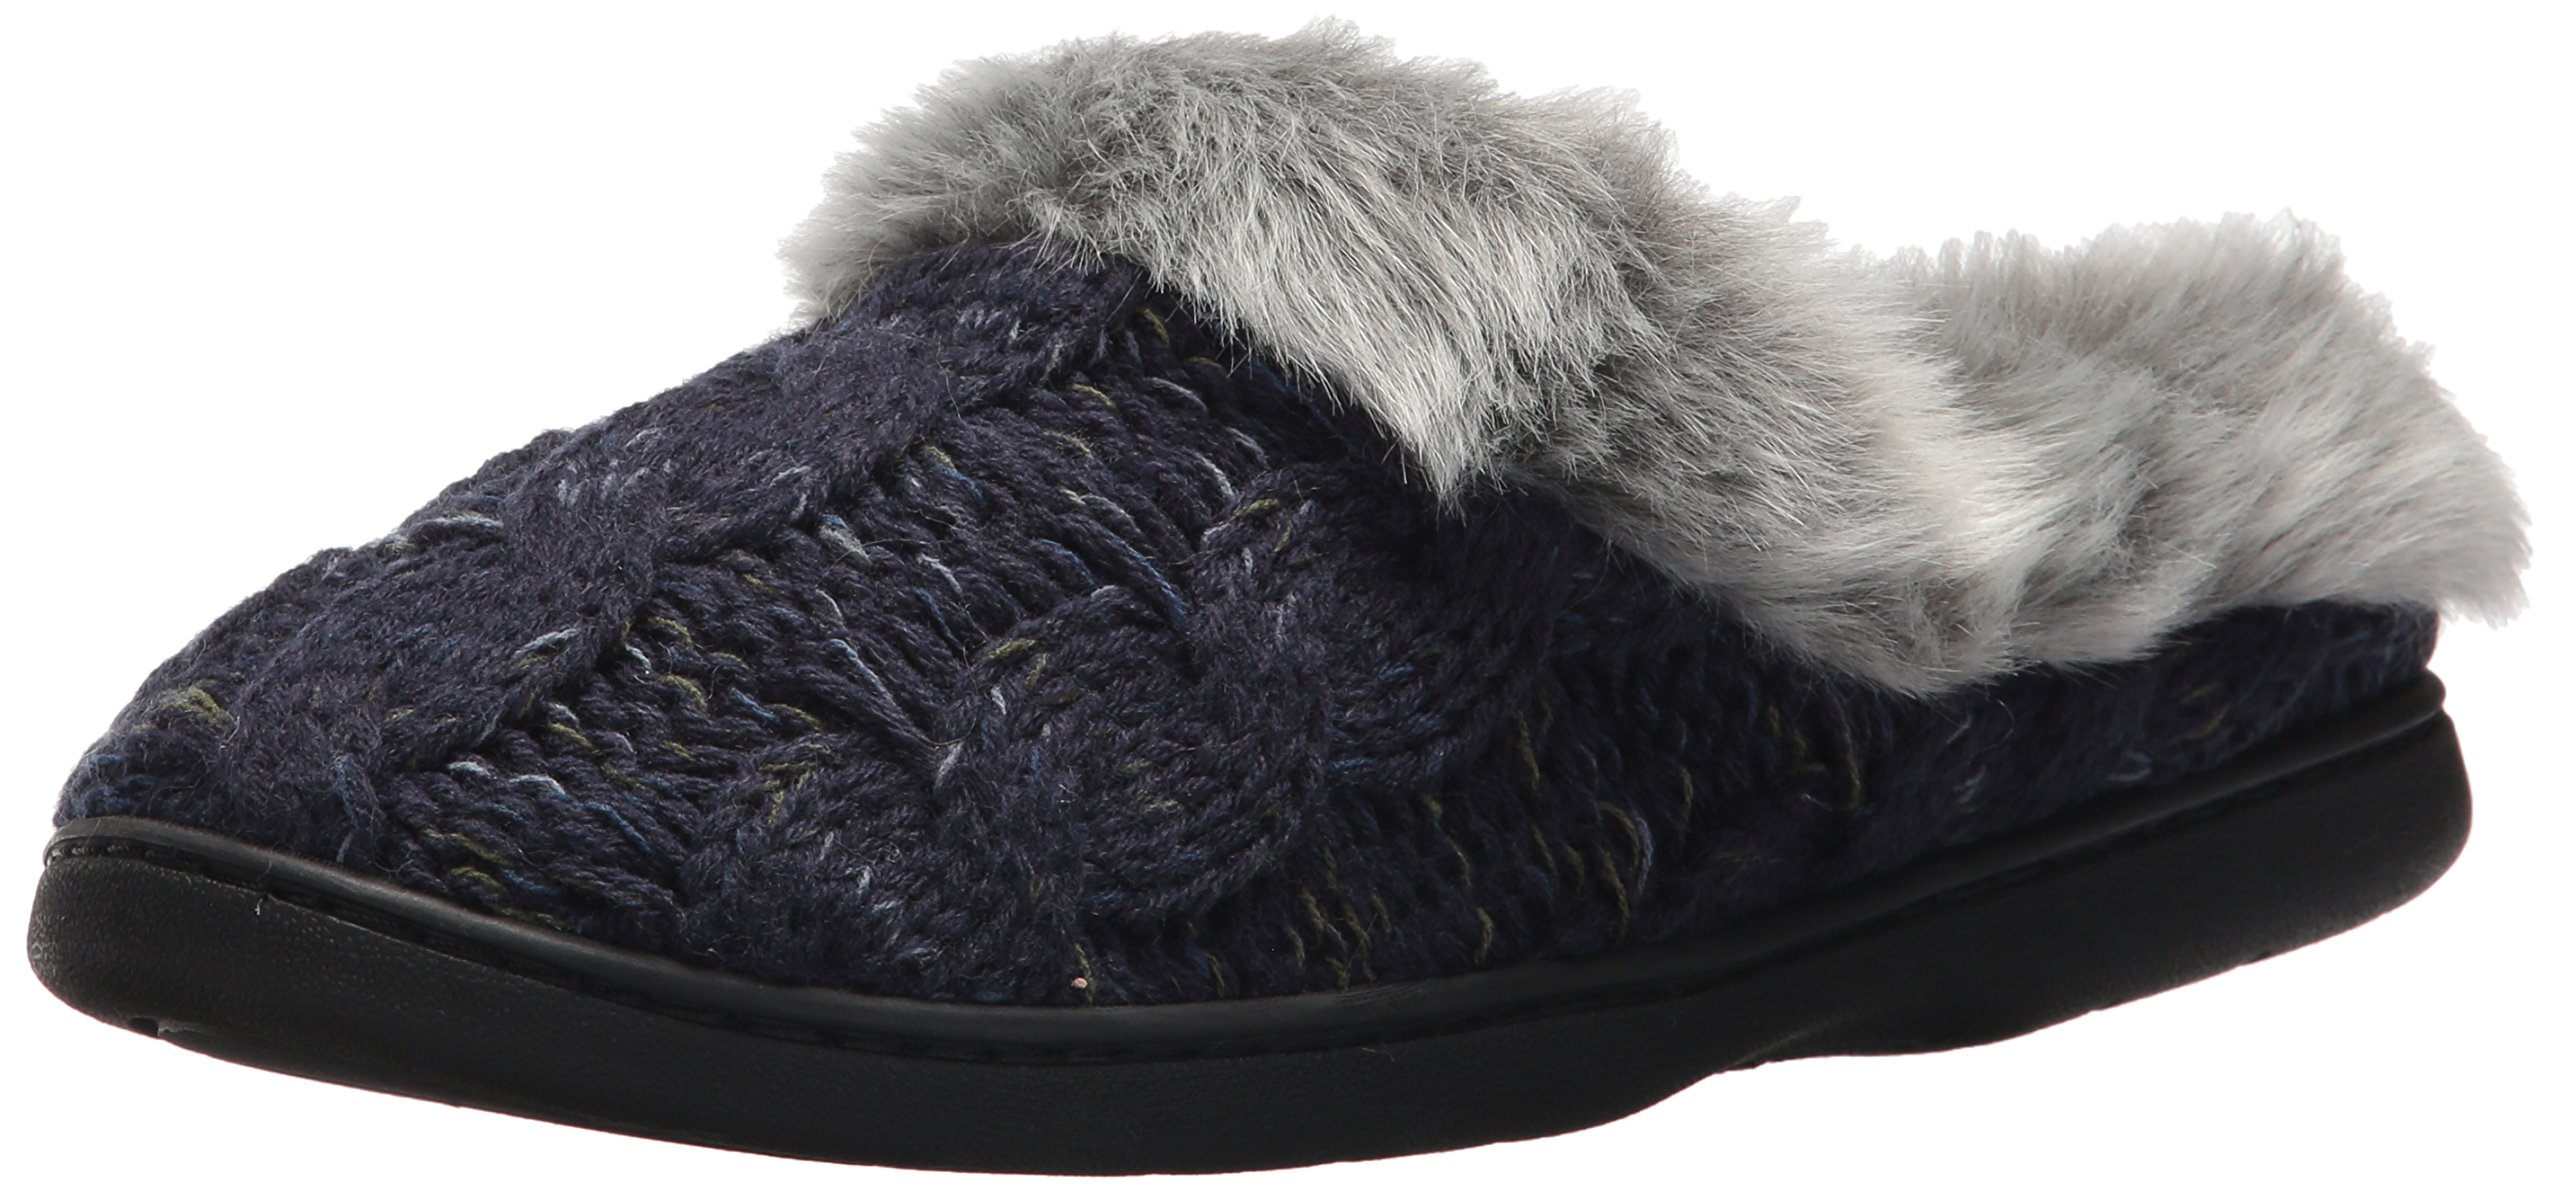 Dearfoams Women's Cable Knit Clog with Space-Dye,Peacoat,XX-Large